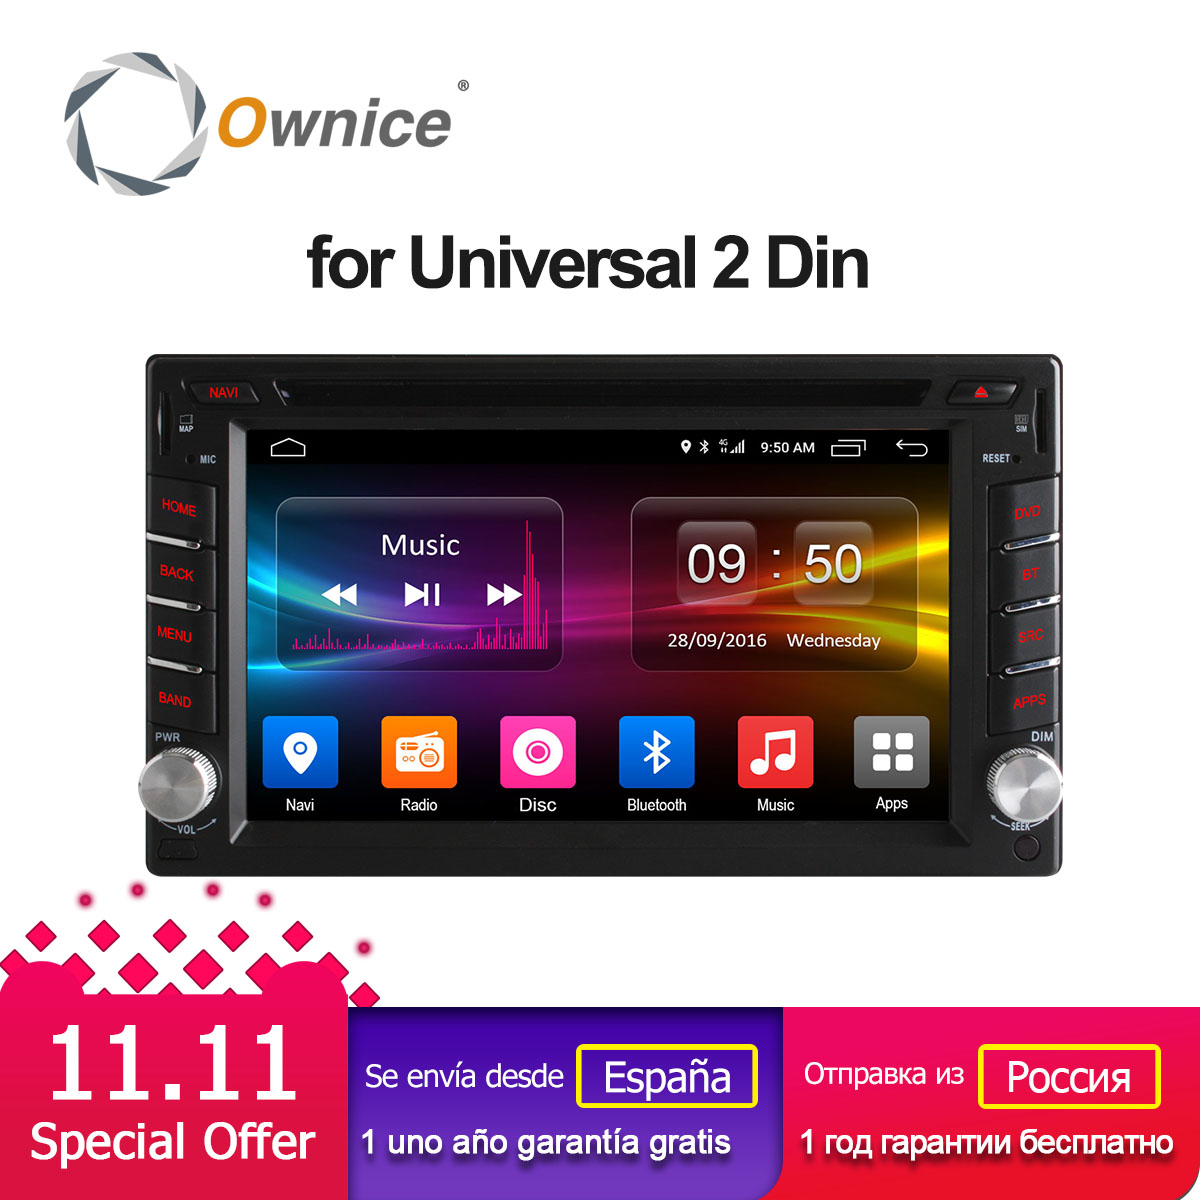 Ownice C500 Android 6.0 Octa 8 Core 2G RAM 2 din car dvd Radio player GPS Navi Video Monitor For universal BT 4G SIM LTE Network ownice c500 7 1024 600 android 6 0 quad core 2 din universal for nissan gps navi bt radio stereo audio player support 4g no dvd